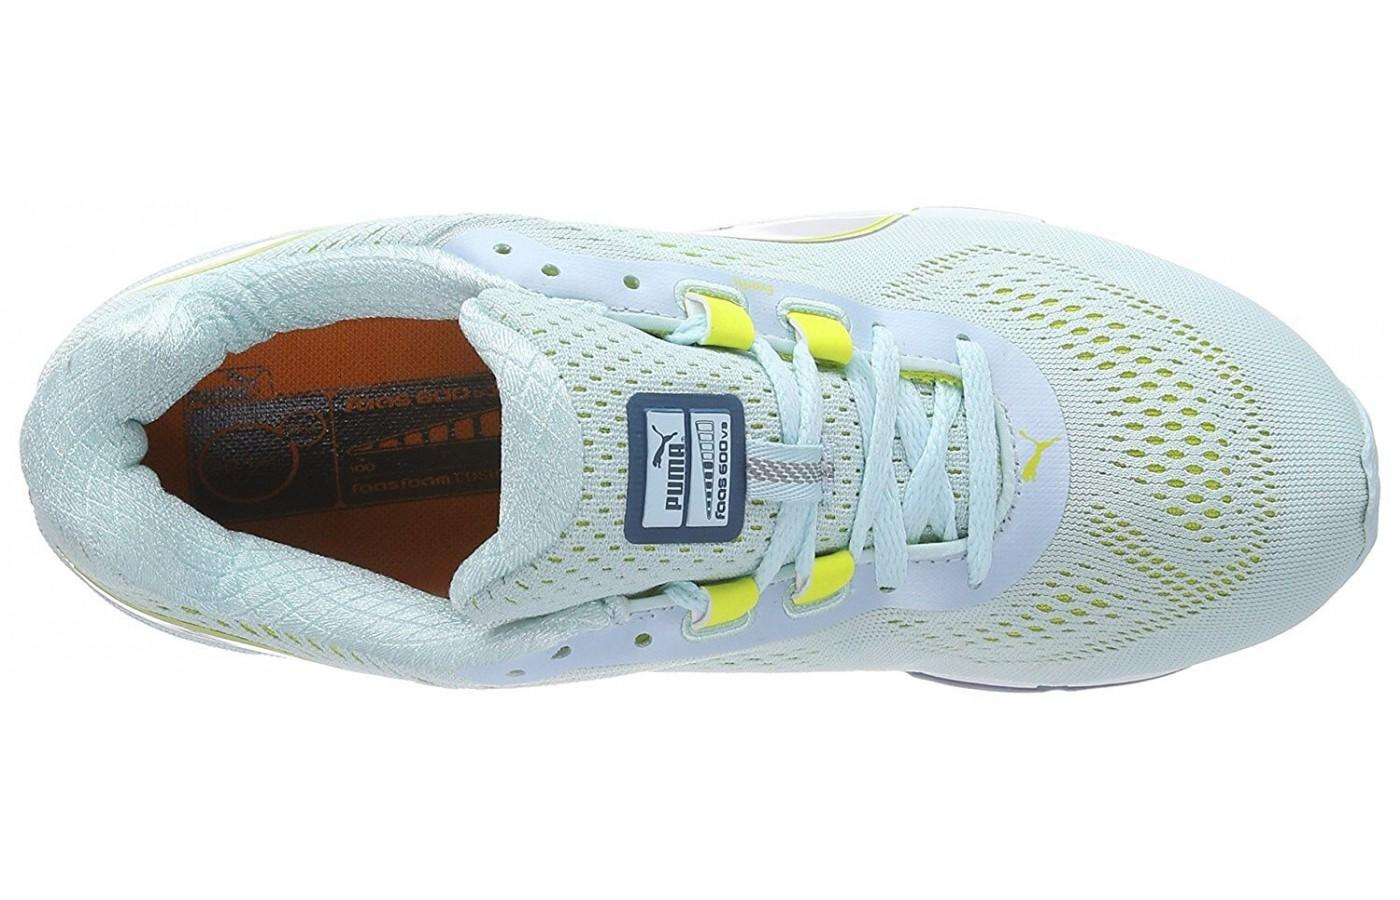 A good look at the breathable air mesh upper of the Puma Faas 600 v3